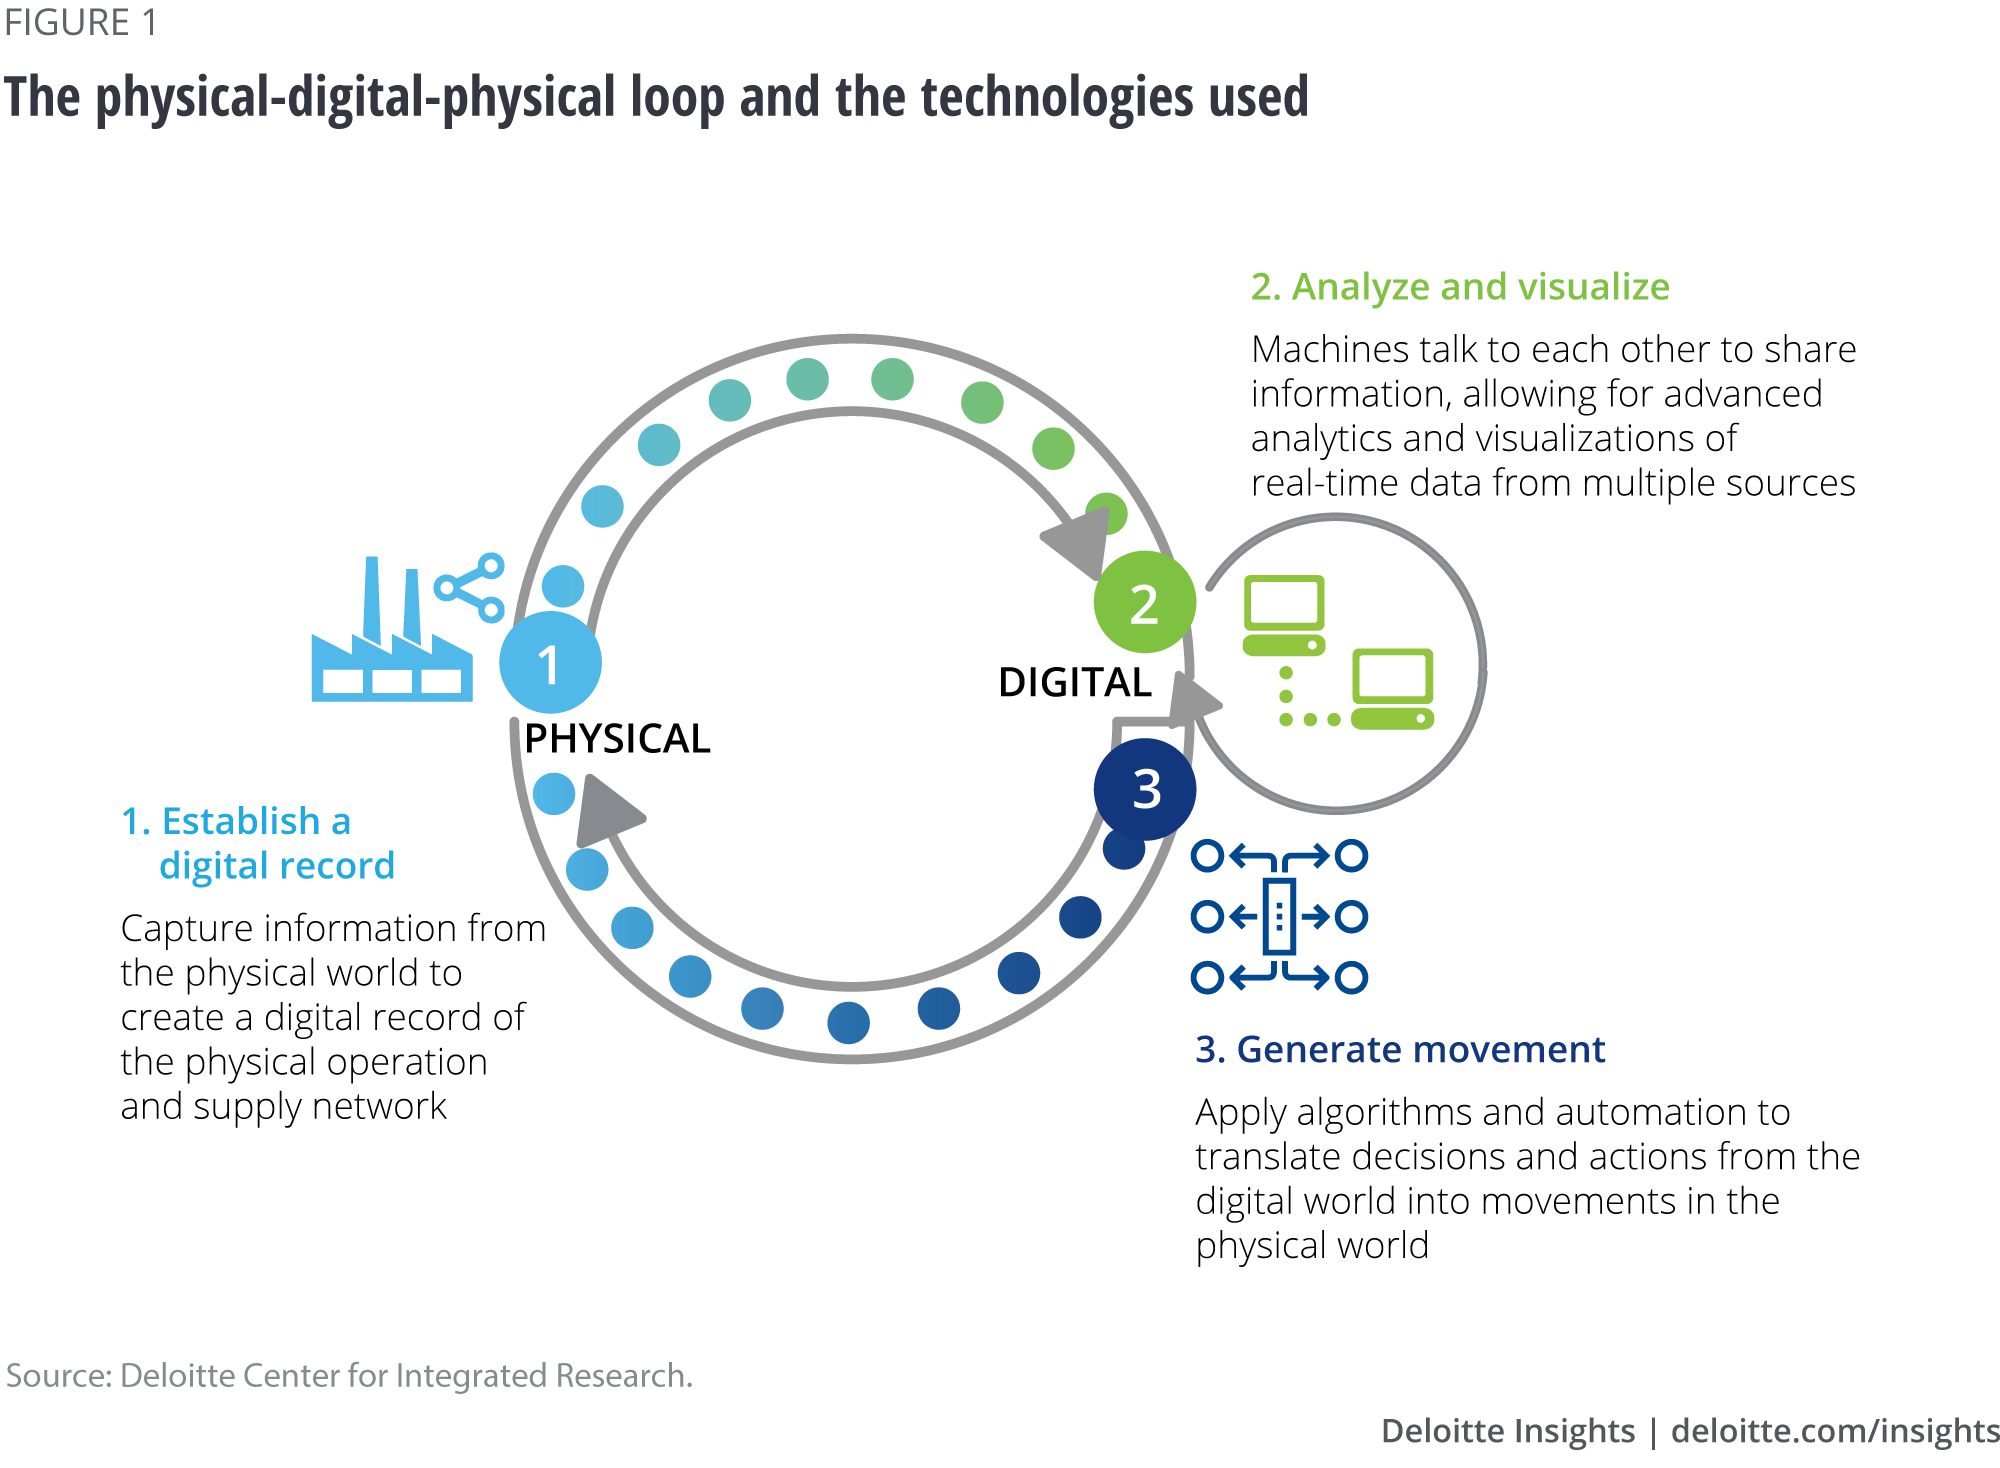 The physical-digital-physical loop and the technologies used